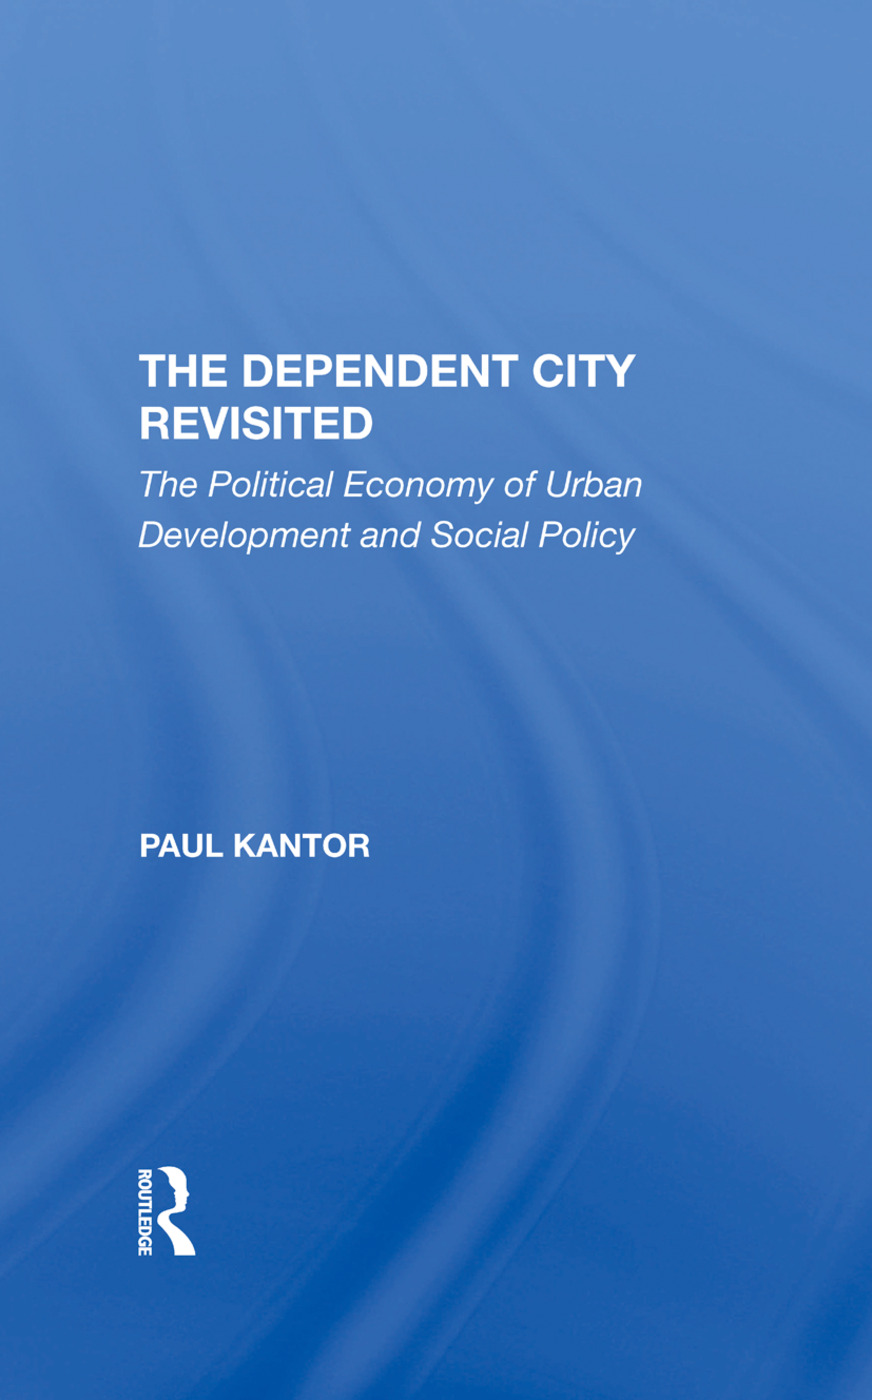 The Dependent City and Urban Politics